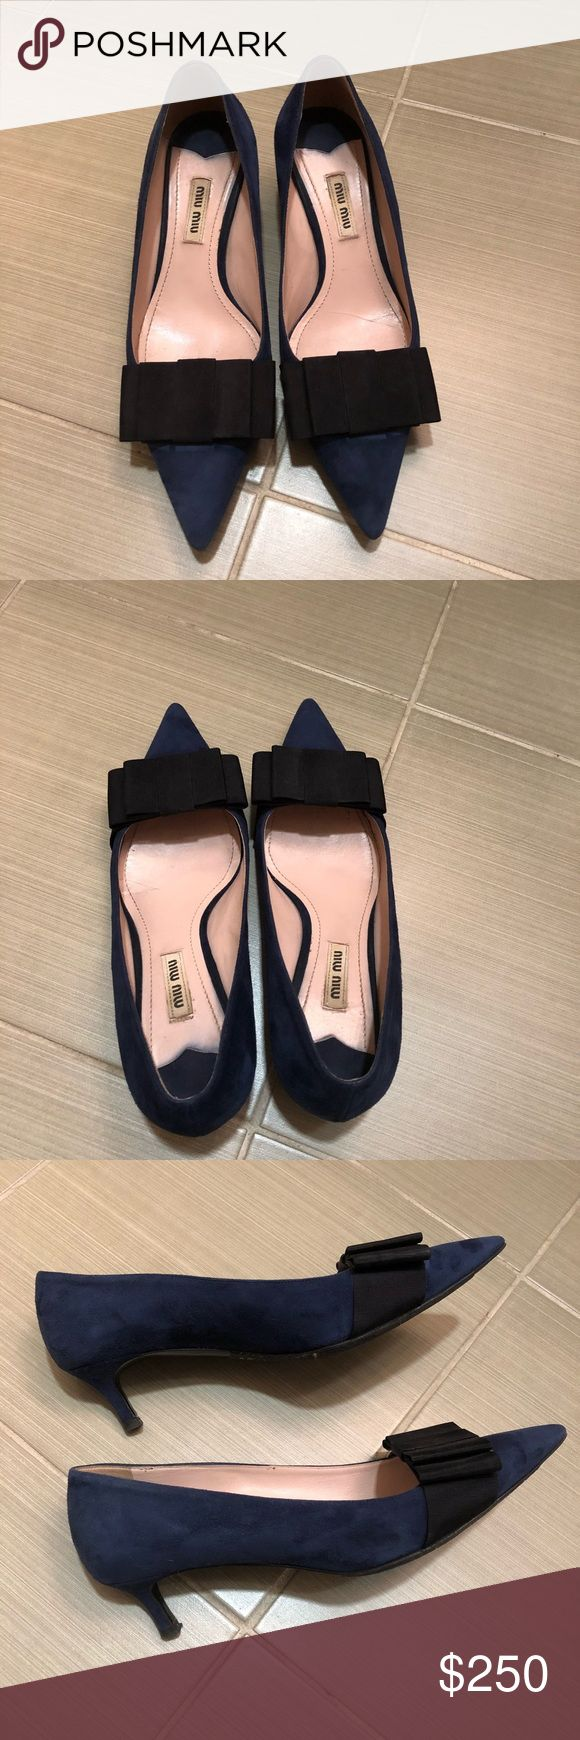 """Miu Miu suede low-heel bow pump Suede. Pointed toe. Grosgrain bow across vamp. Leather lining and sole. 2"""" covered kitten heel. Made in Italy.    Gently worn. Got shoe sole protector at shoe store and it is removable. There is one scratch on the back of the heel as shown on picture. Runs true to size. Miu Miu Shoes Heels"""